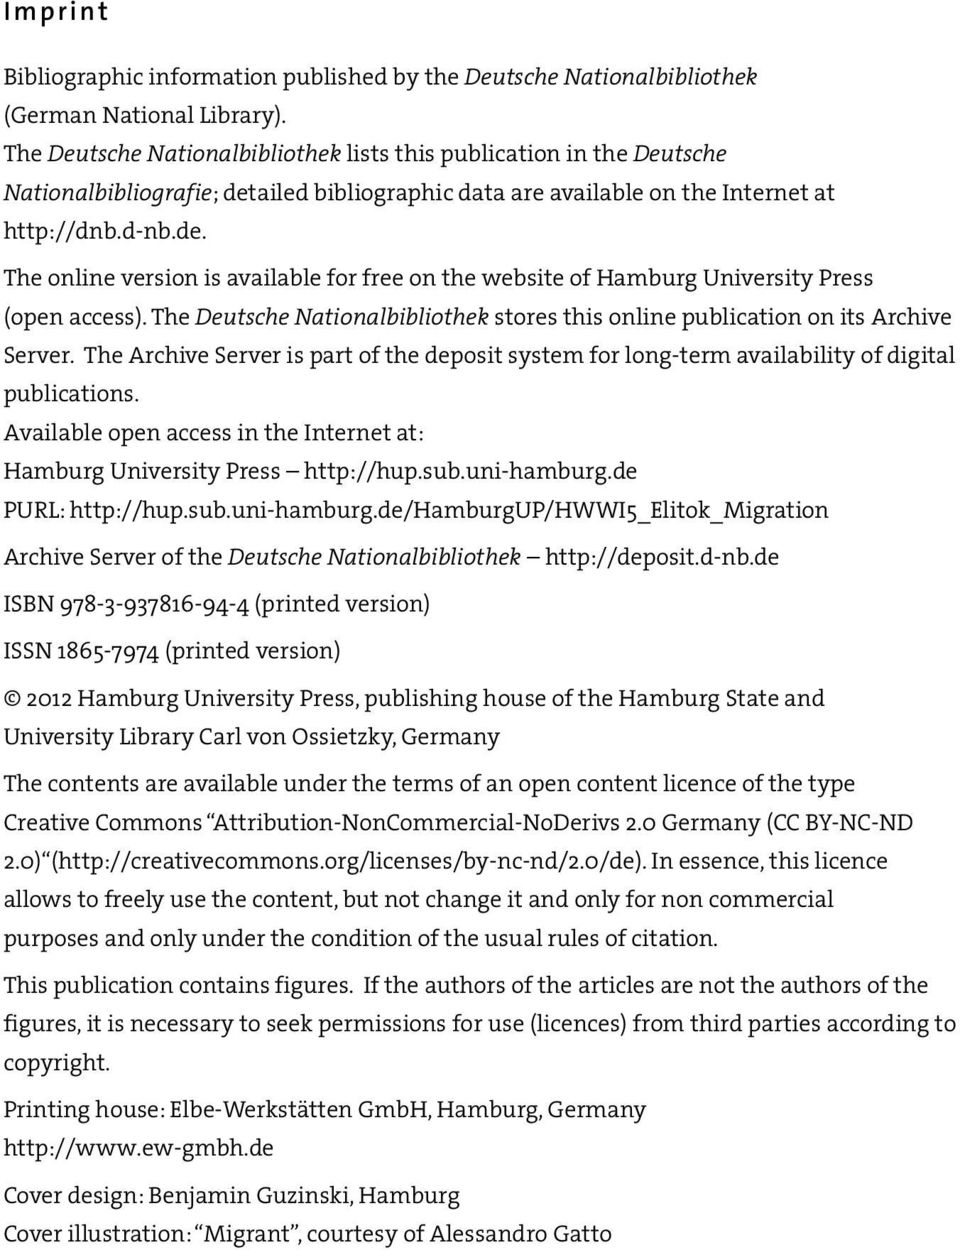 The Deutsche Nationalbibliothek stores this online publication on its Archive Server. The Archive Server is part of the deposit system for long-term availability of digital publications.